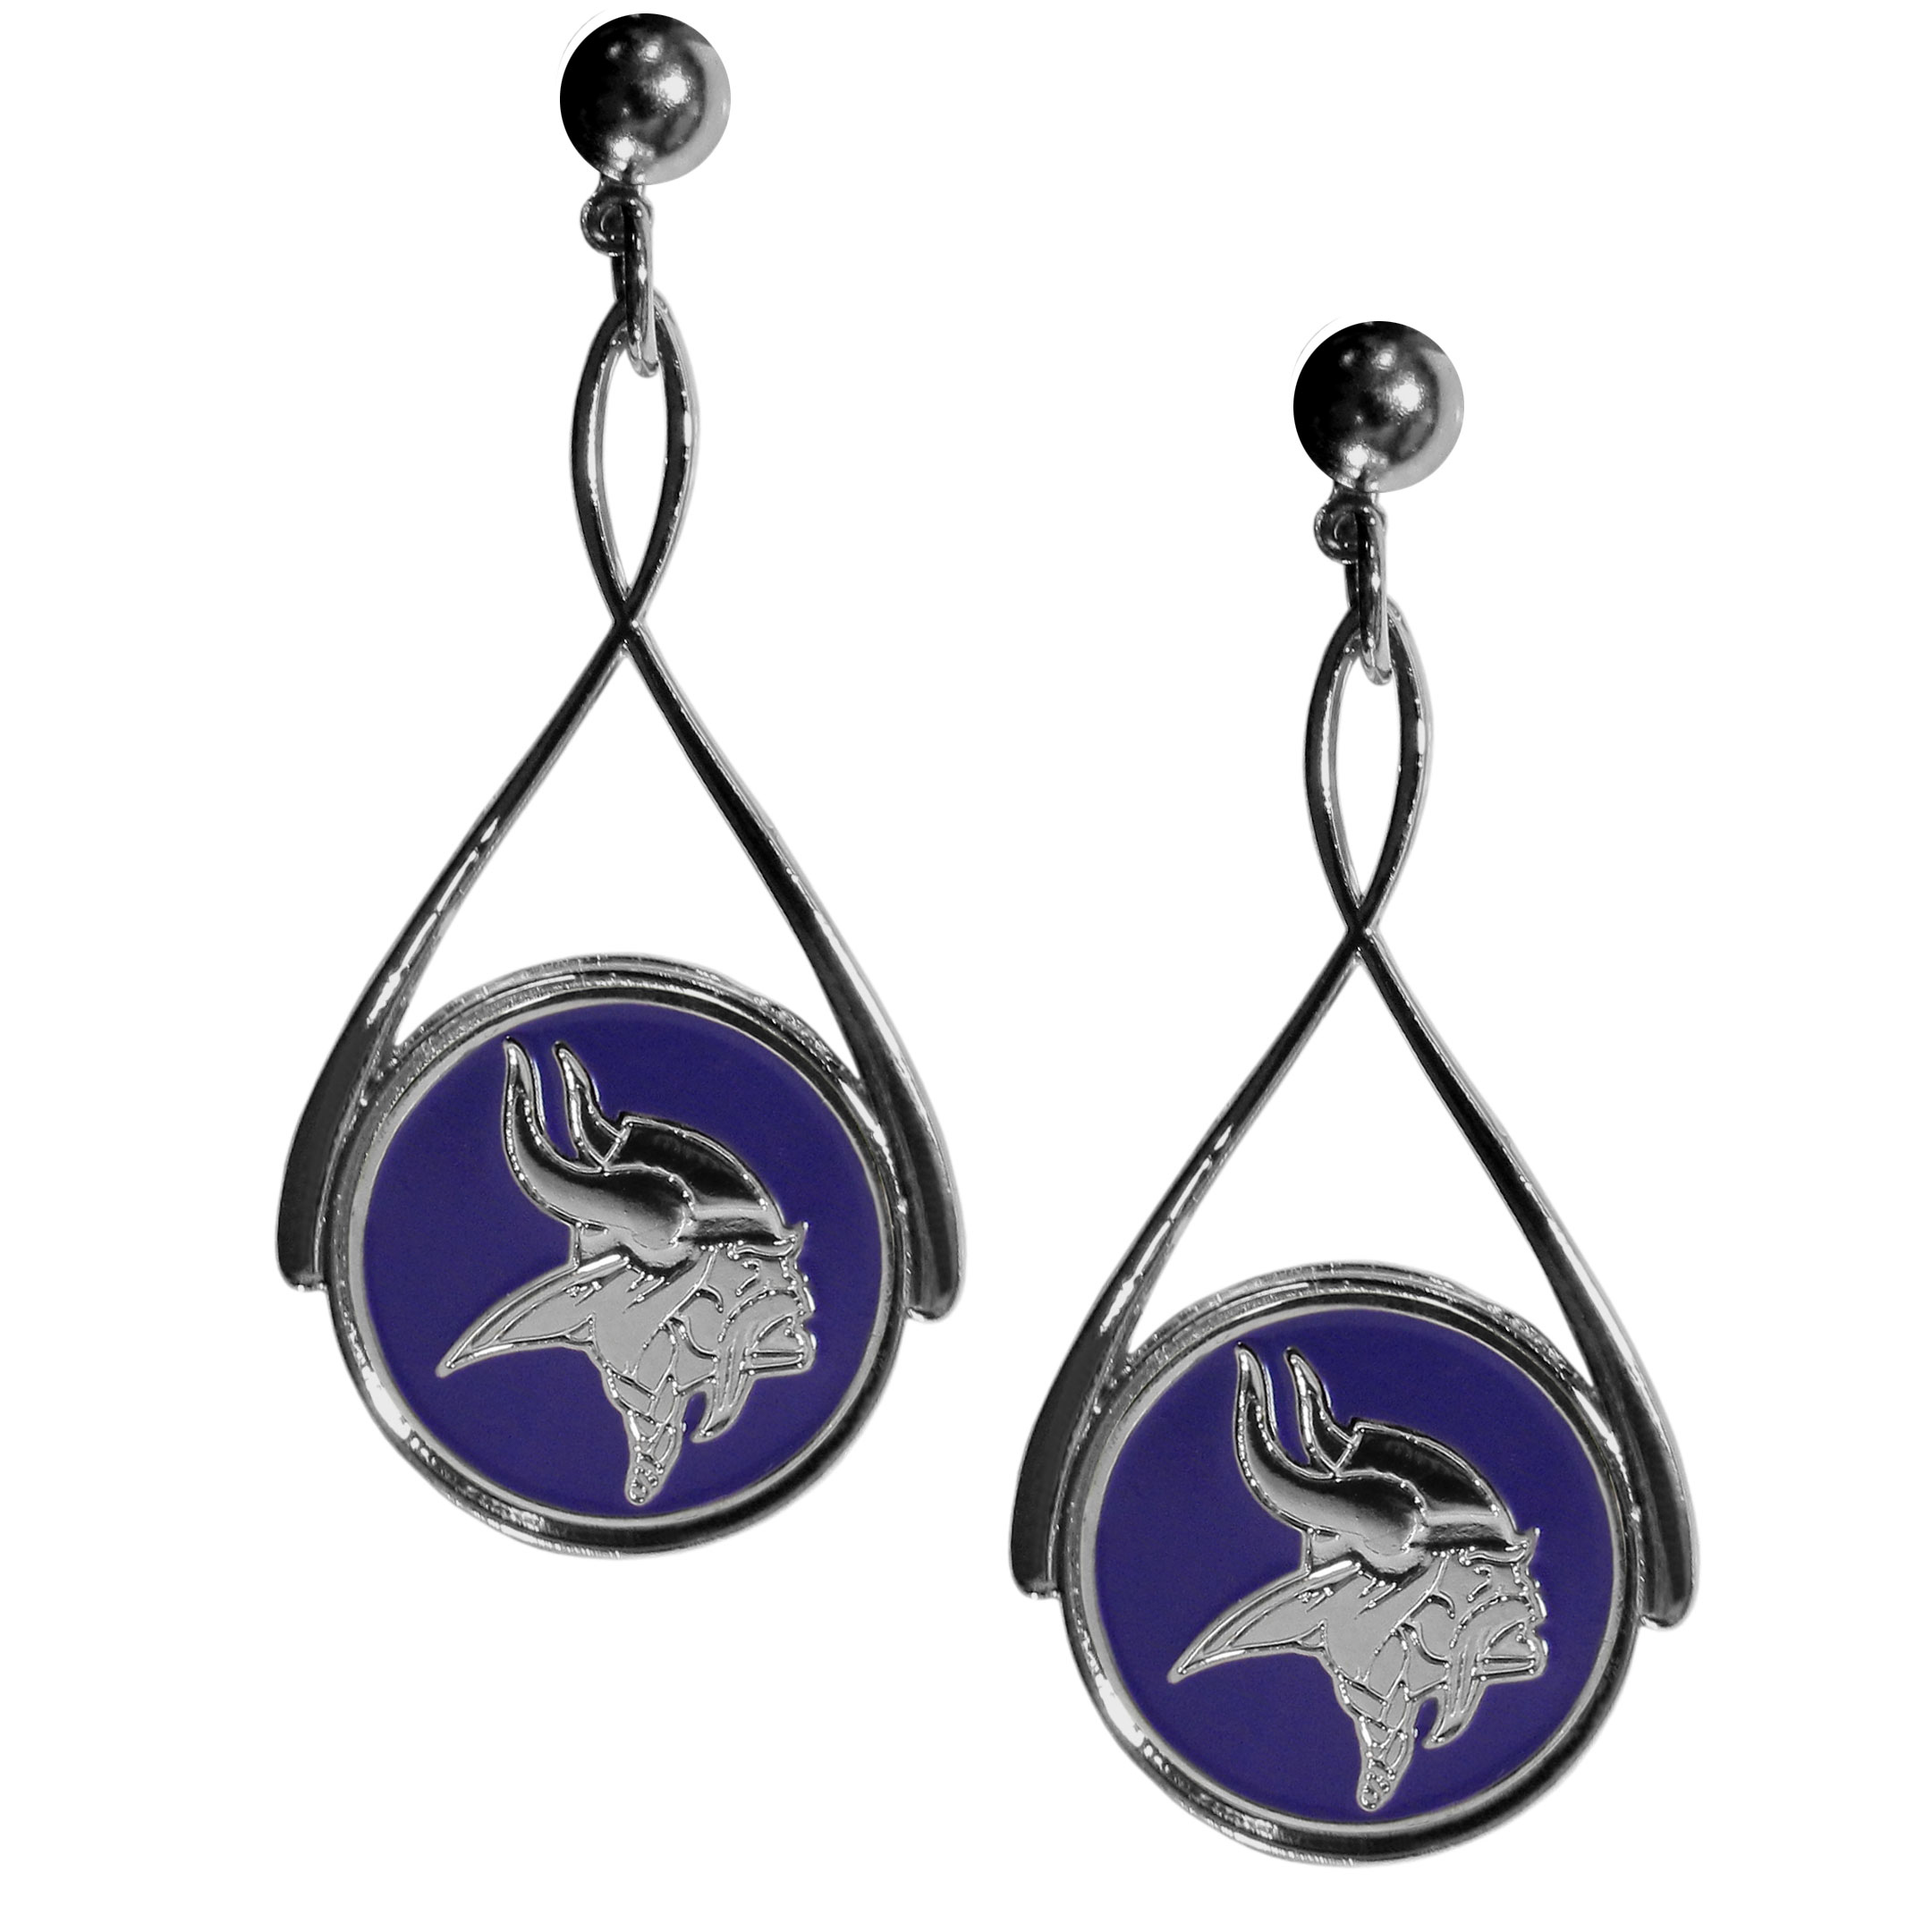 Minnesota Vikings Tear Drop Earrings - Our Minnesota Vikings are a sporty twist on the classic tear drop earrings. The high polish dangle earrings feature the team logo in raised metal against the primary team color inset into the 2 inch tear drop setting. The earrings have hypoallergenic stud posts.